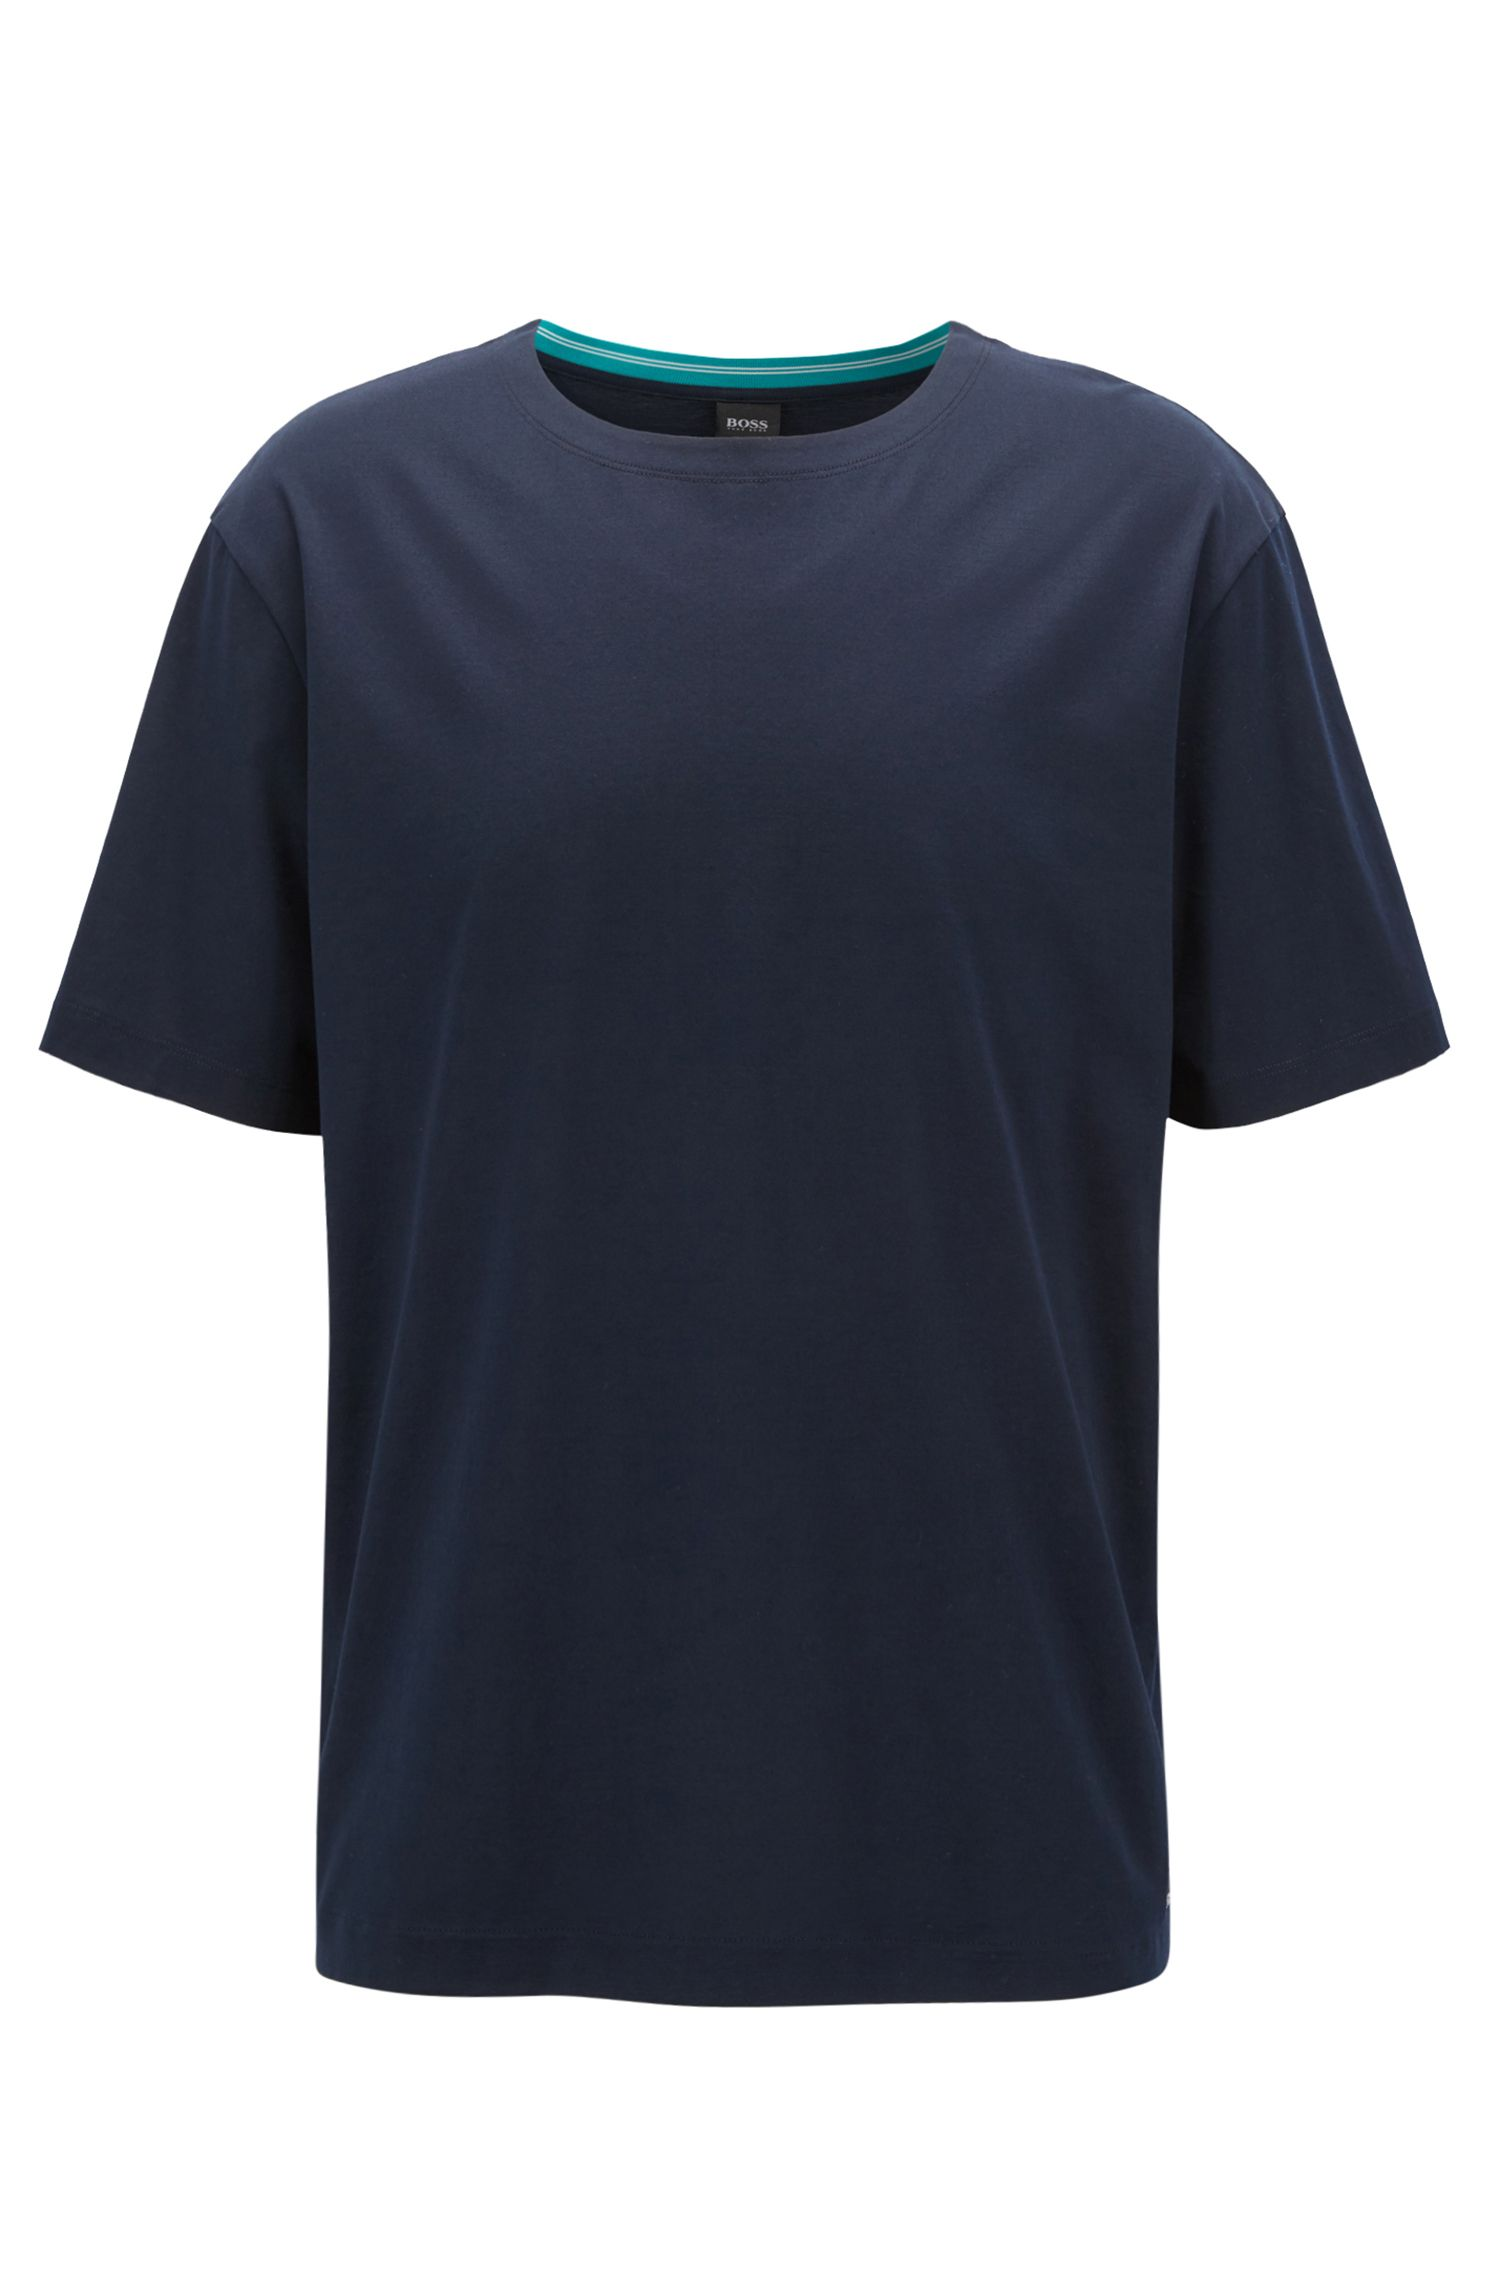 Hugo Boss - Mercerised-cotton T-shirt with contrast collar band - 1